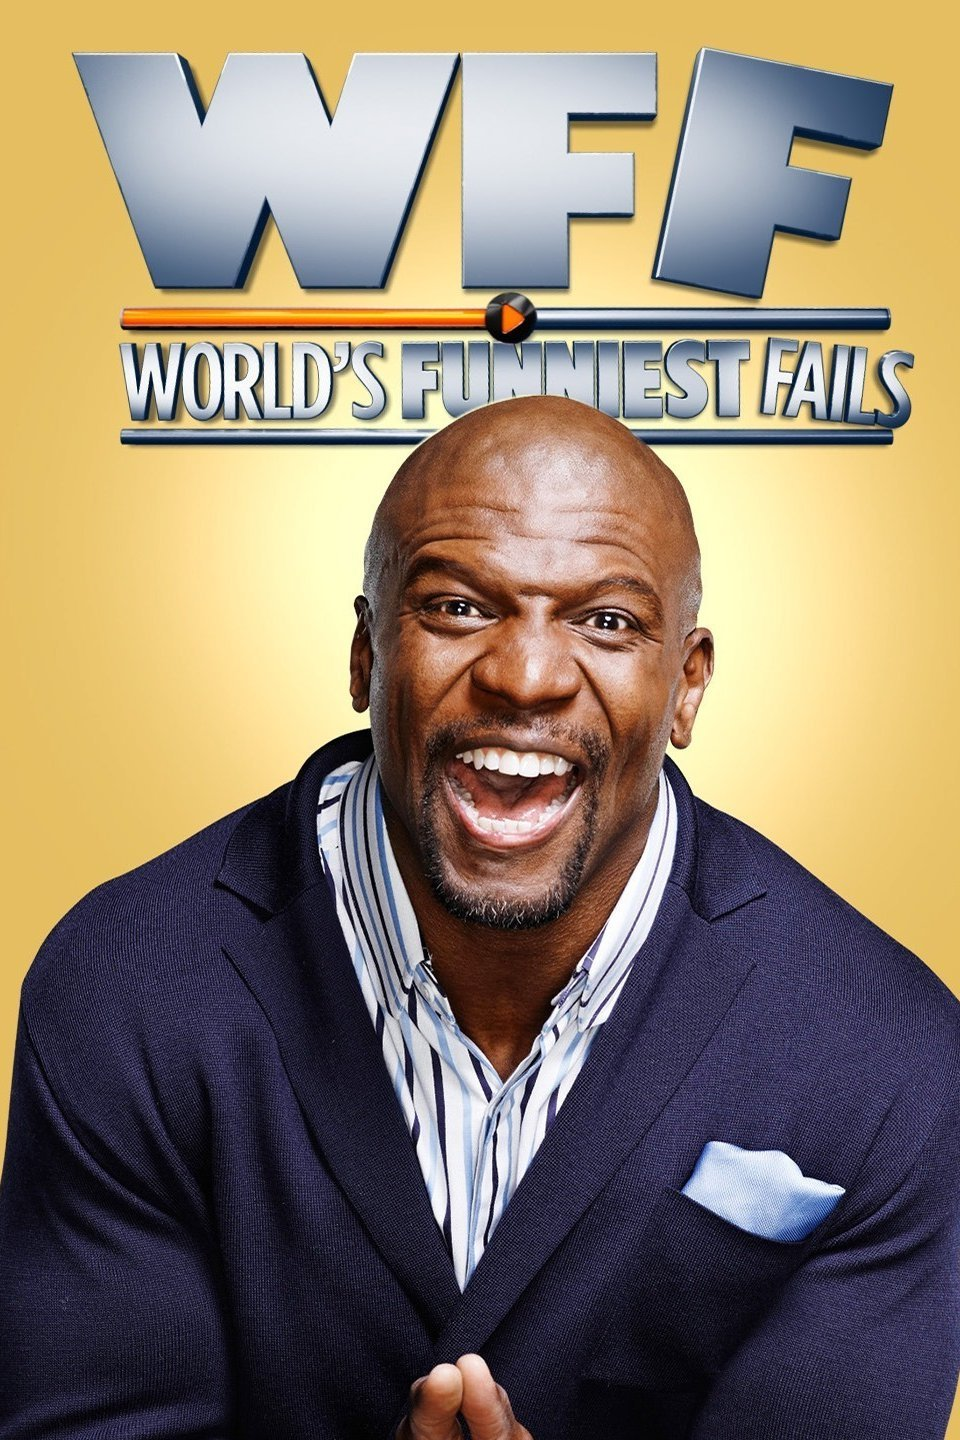 World's Funniest (2015 TV Series)